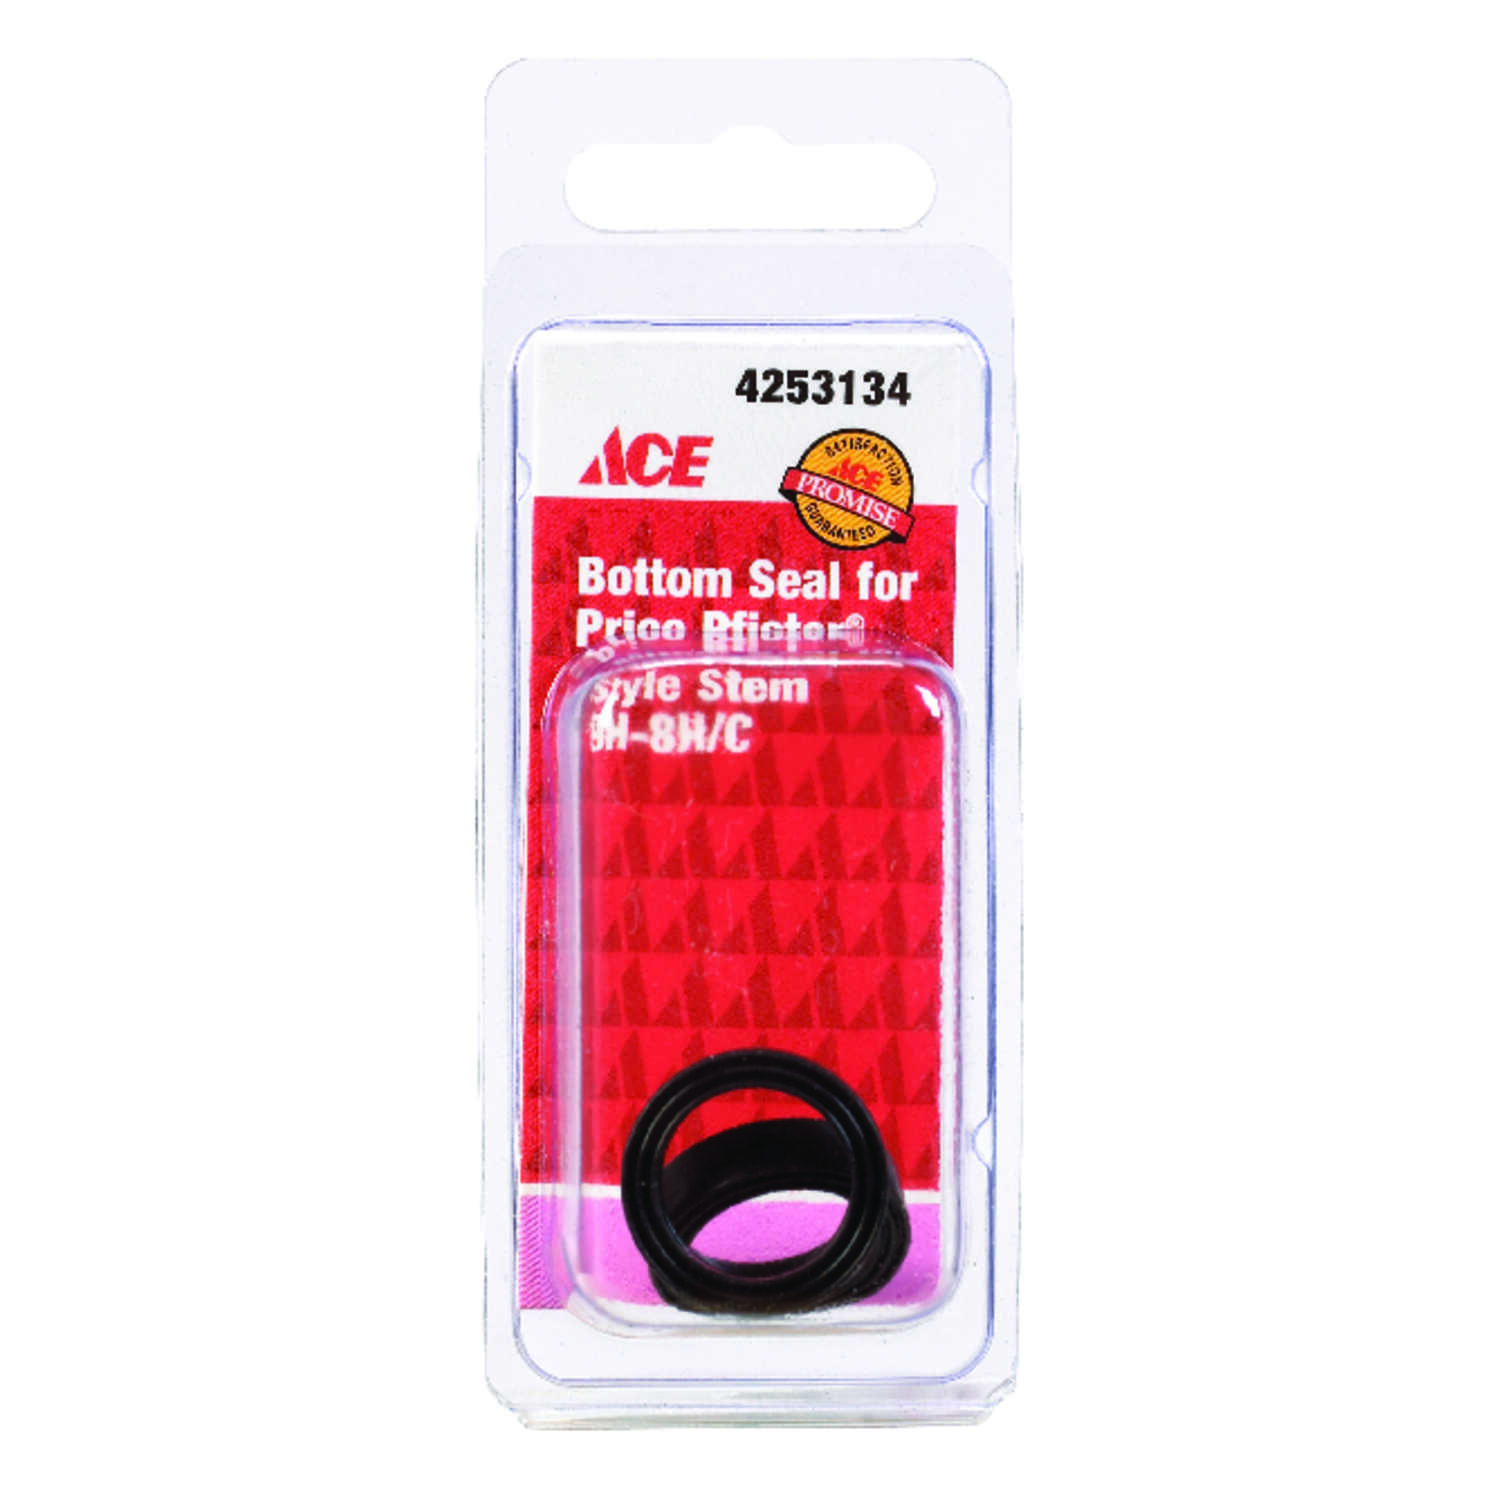 Ace  Tub and Shower  Rubber  9H-18H/C  Bottom Seal